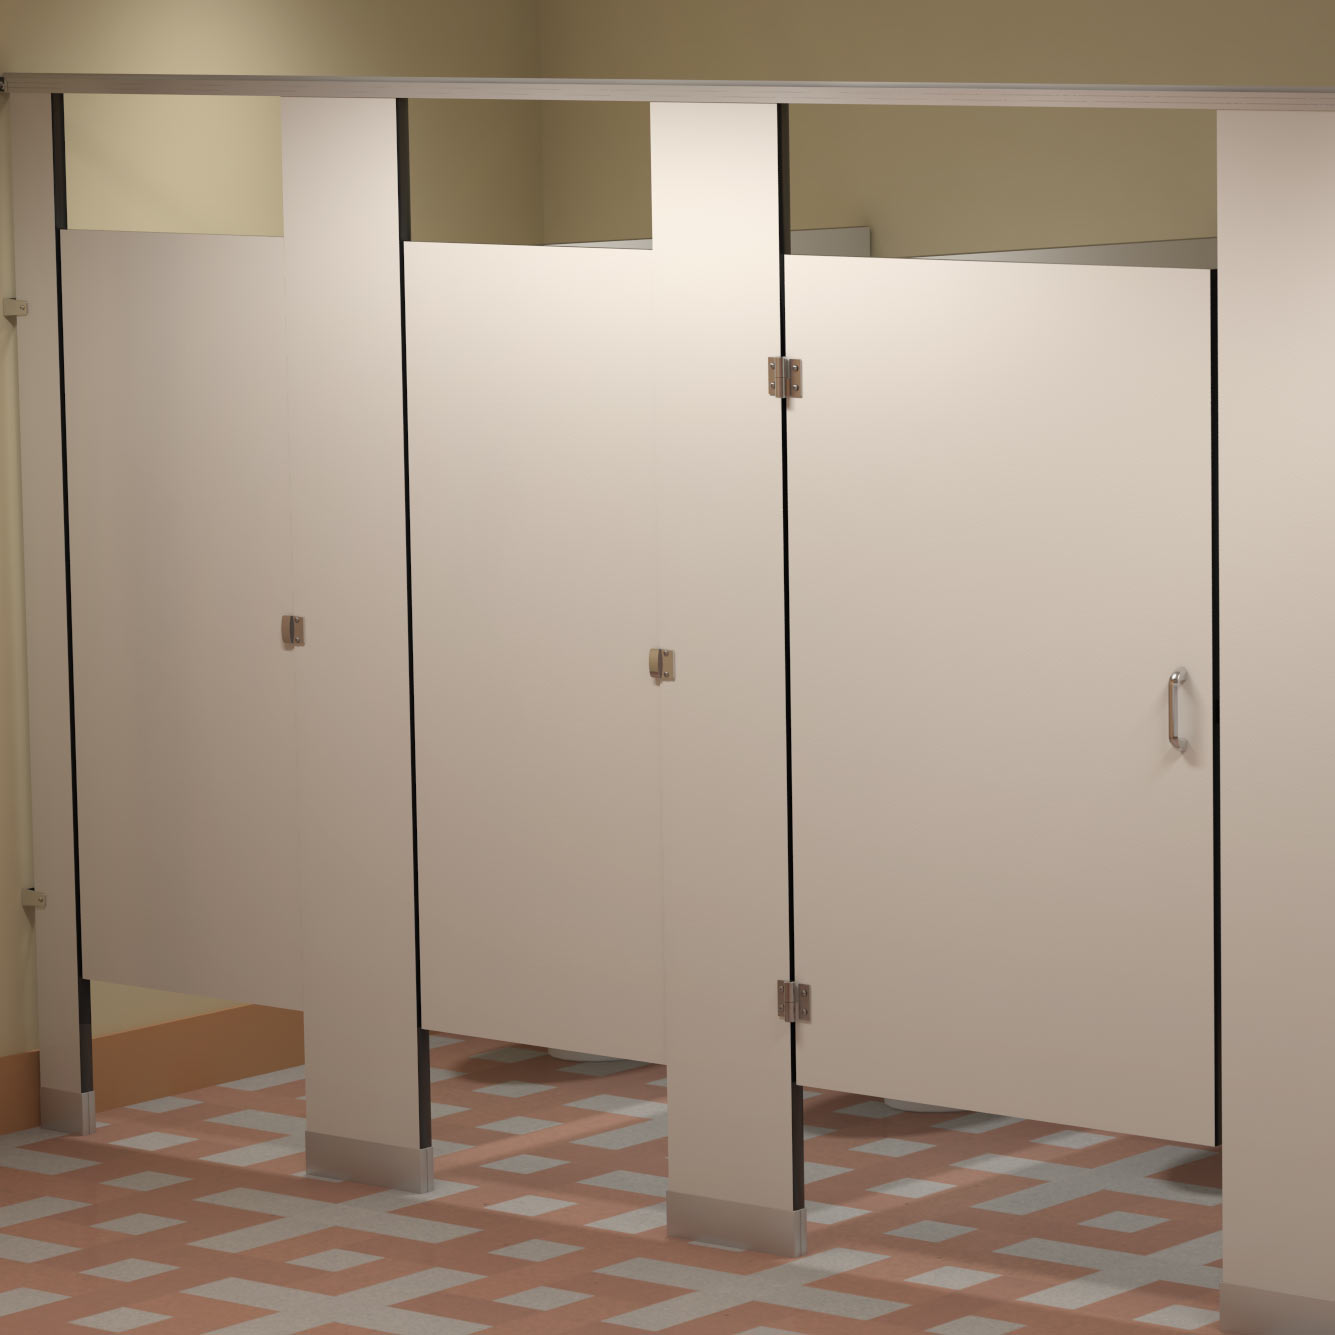 Bathroom Urinal Partitions phenolic-bathroom-partitions